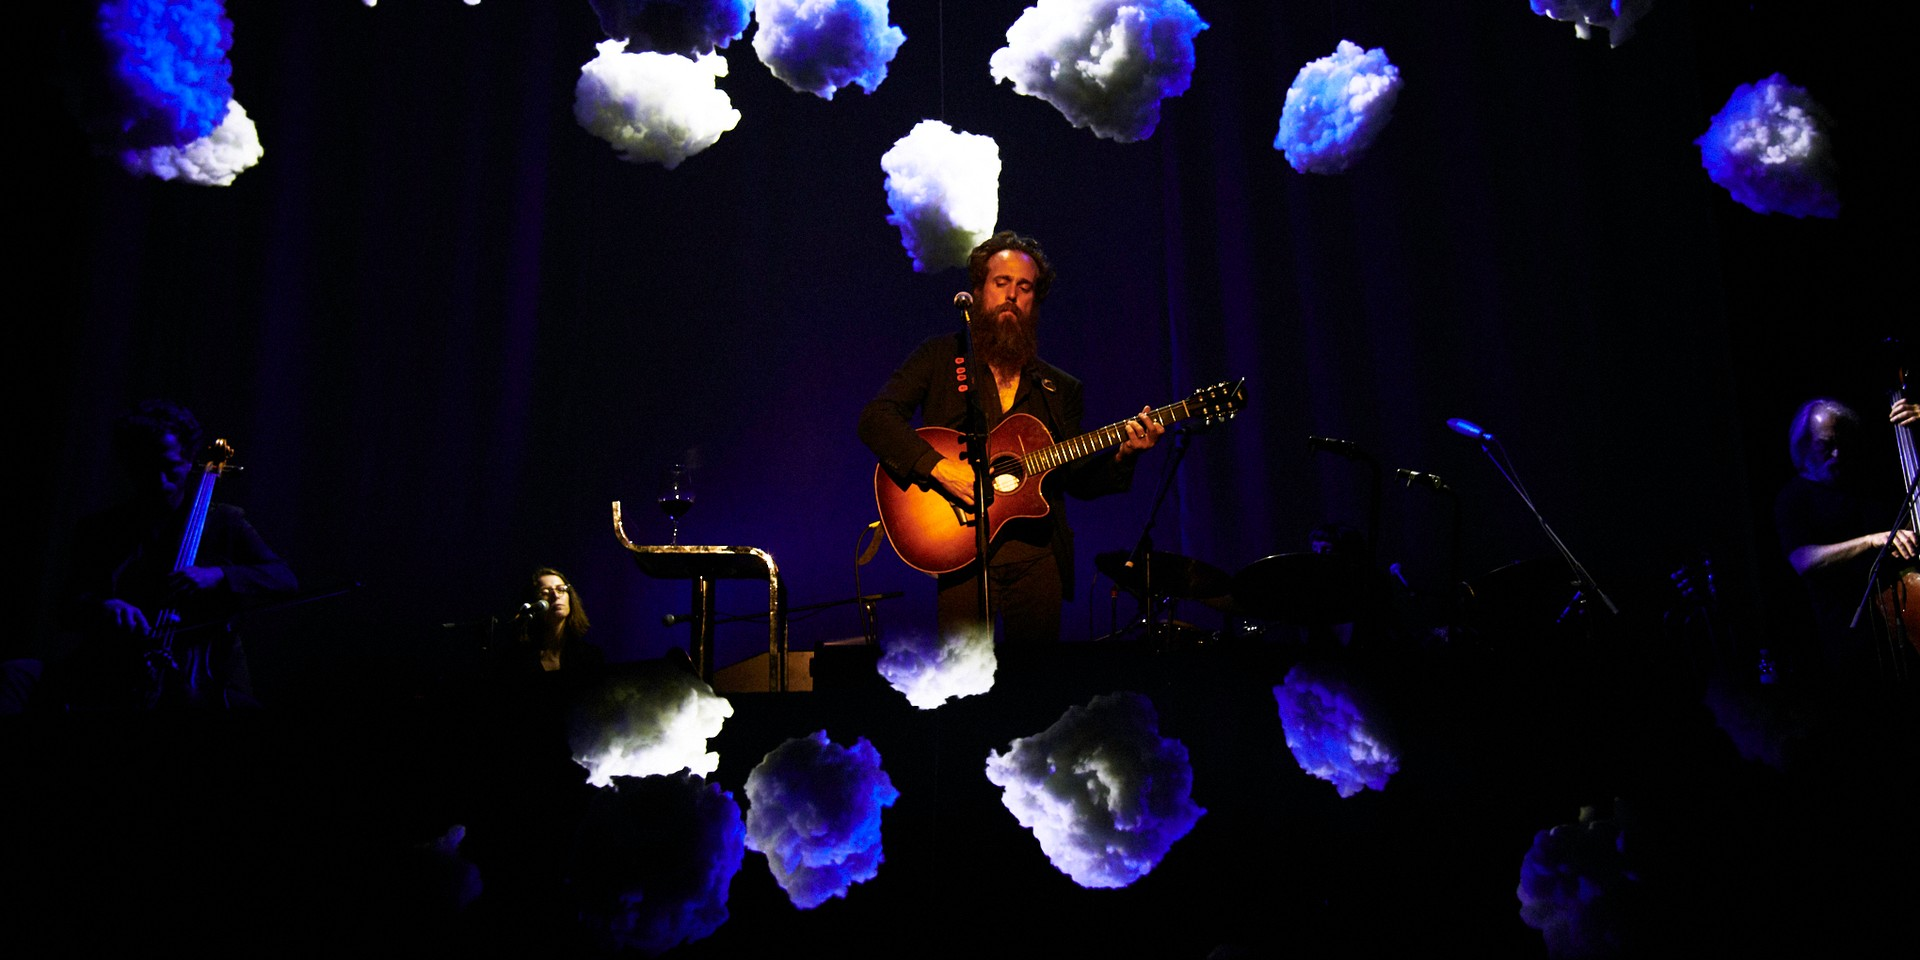 Iron & Wine intoxicates at Capitol Theatre – gig report